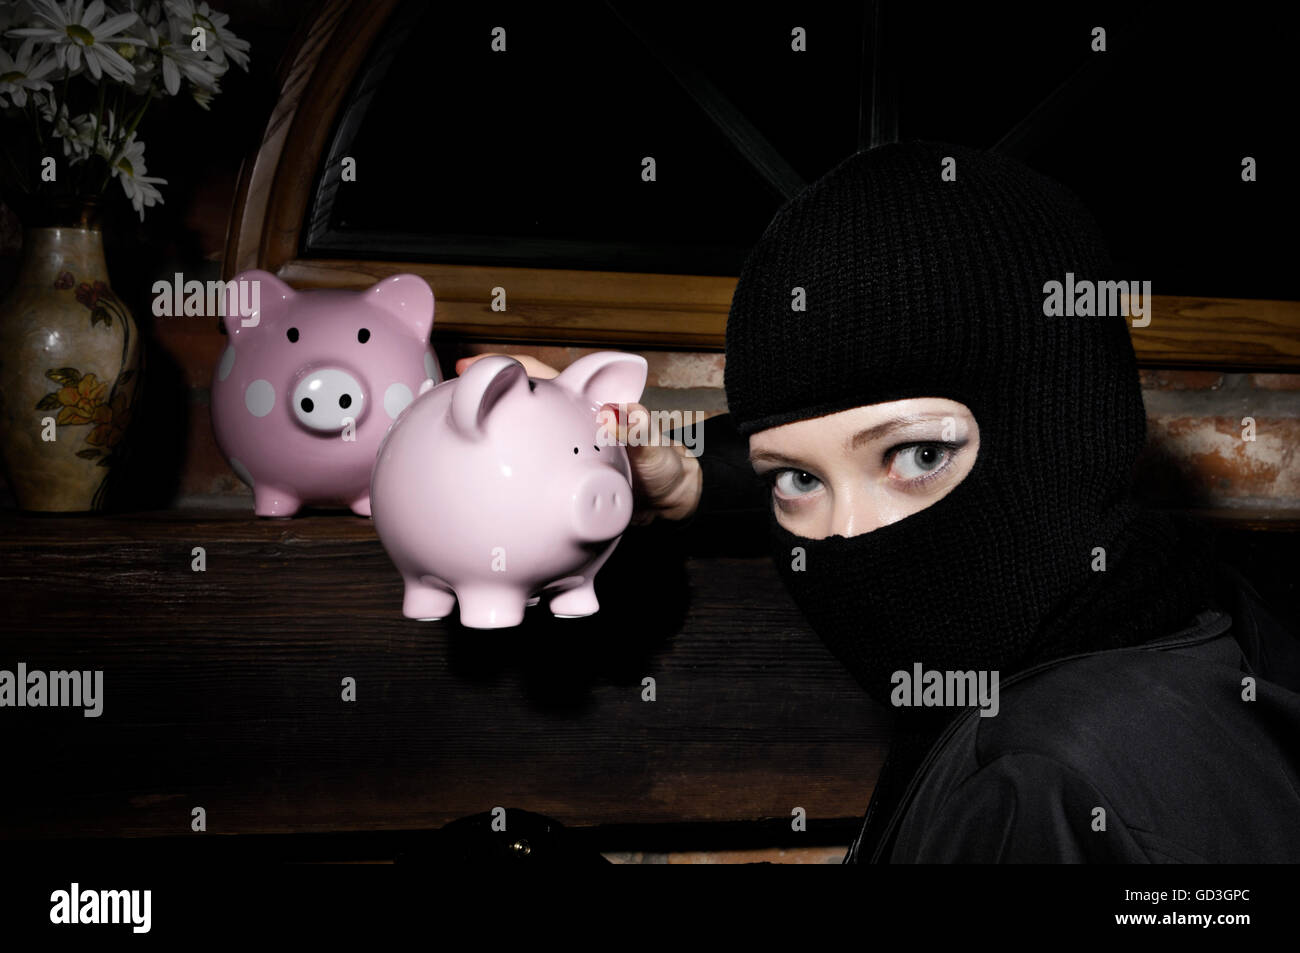 Caught by surprise burglar stealing piggy banks from a house at night - Stock Image